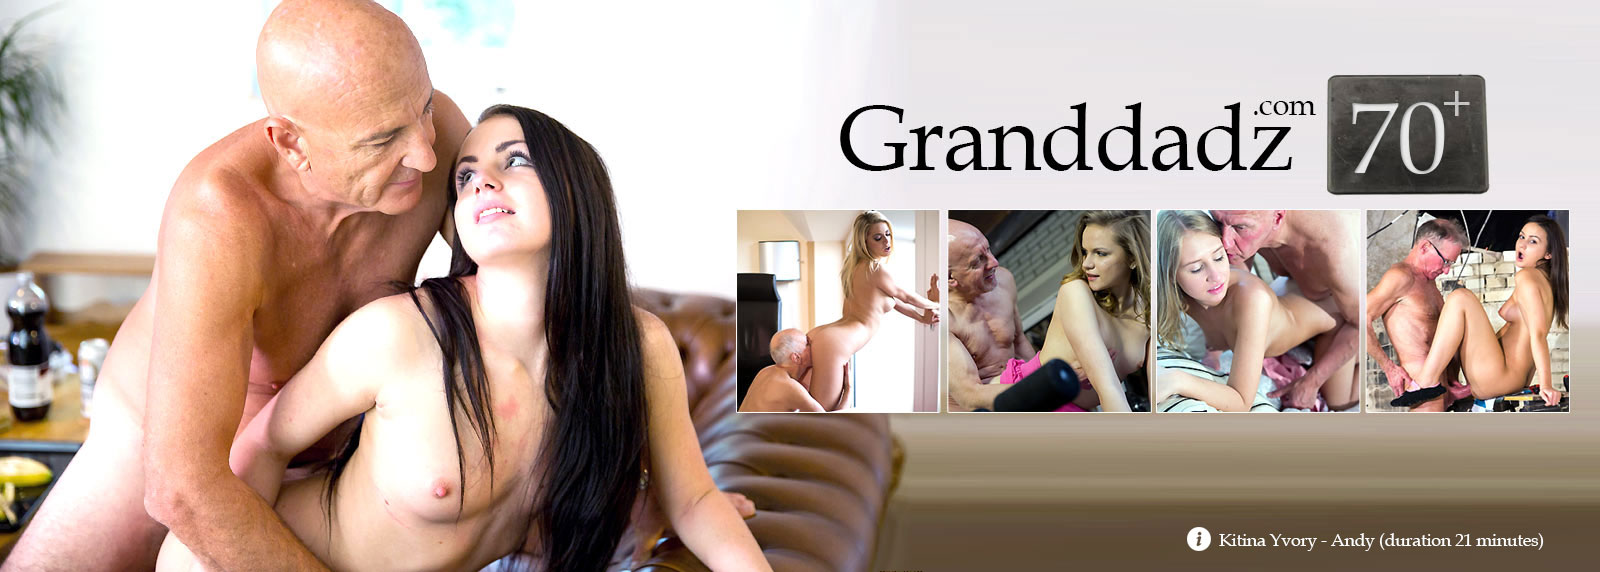 kitina yvory fucked by senior granddad